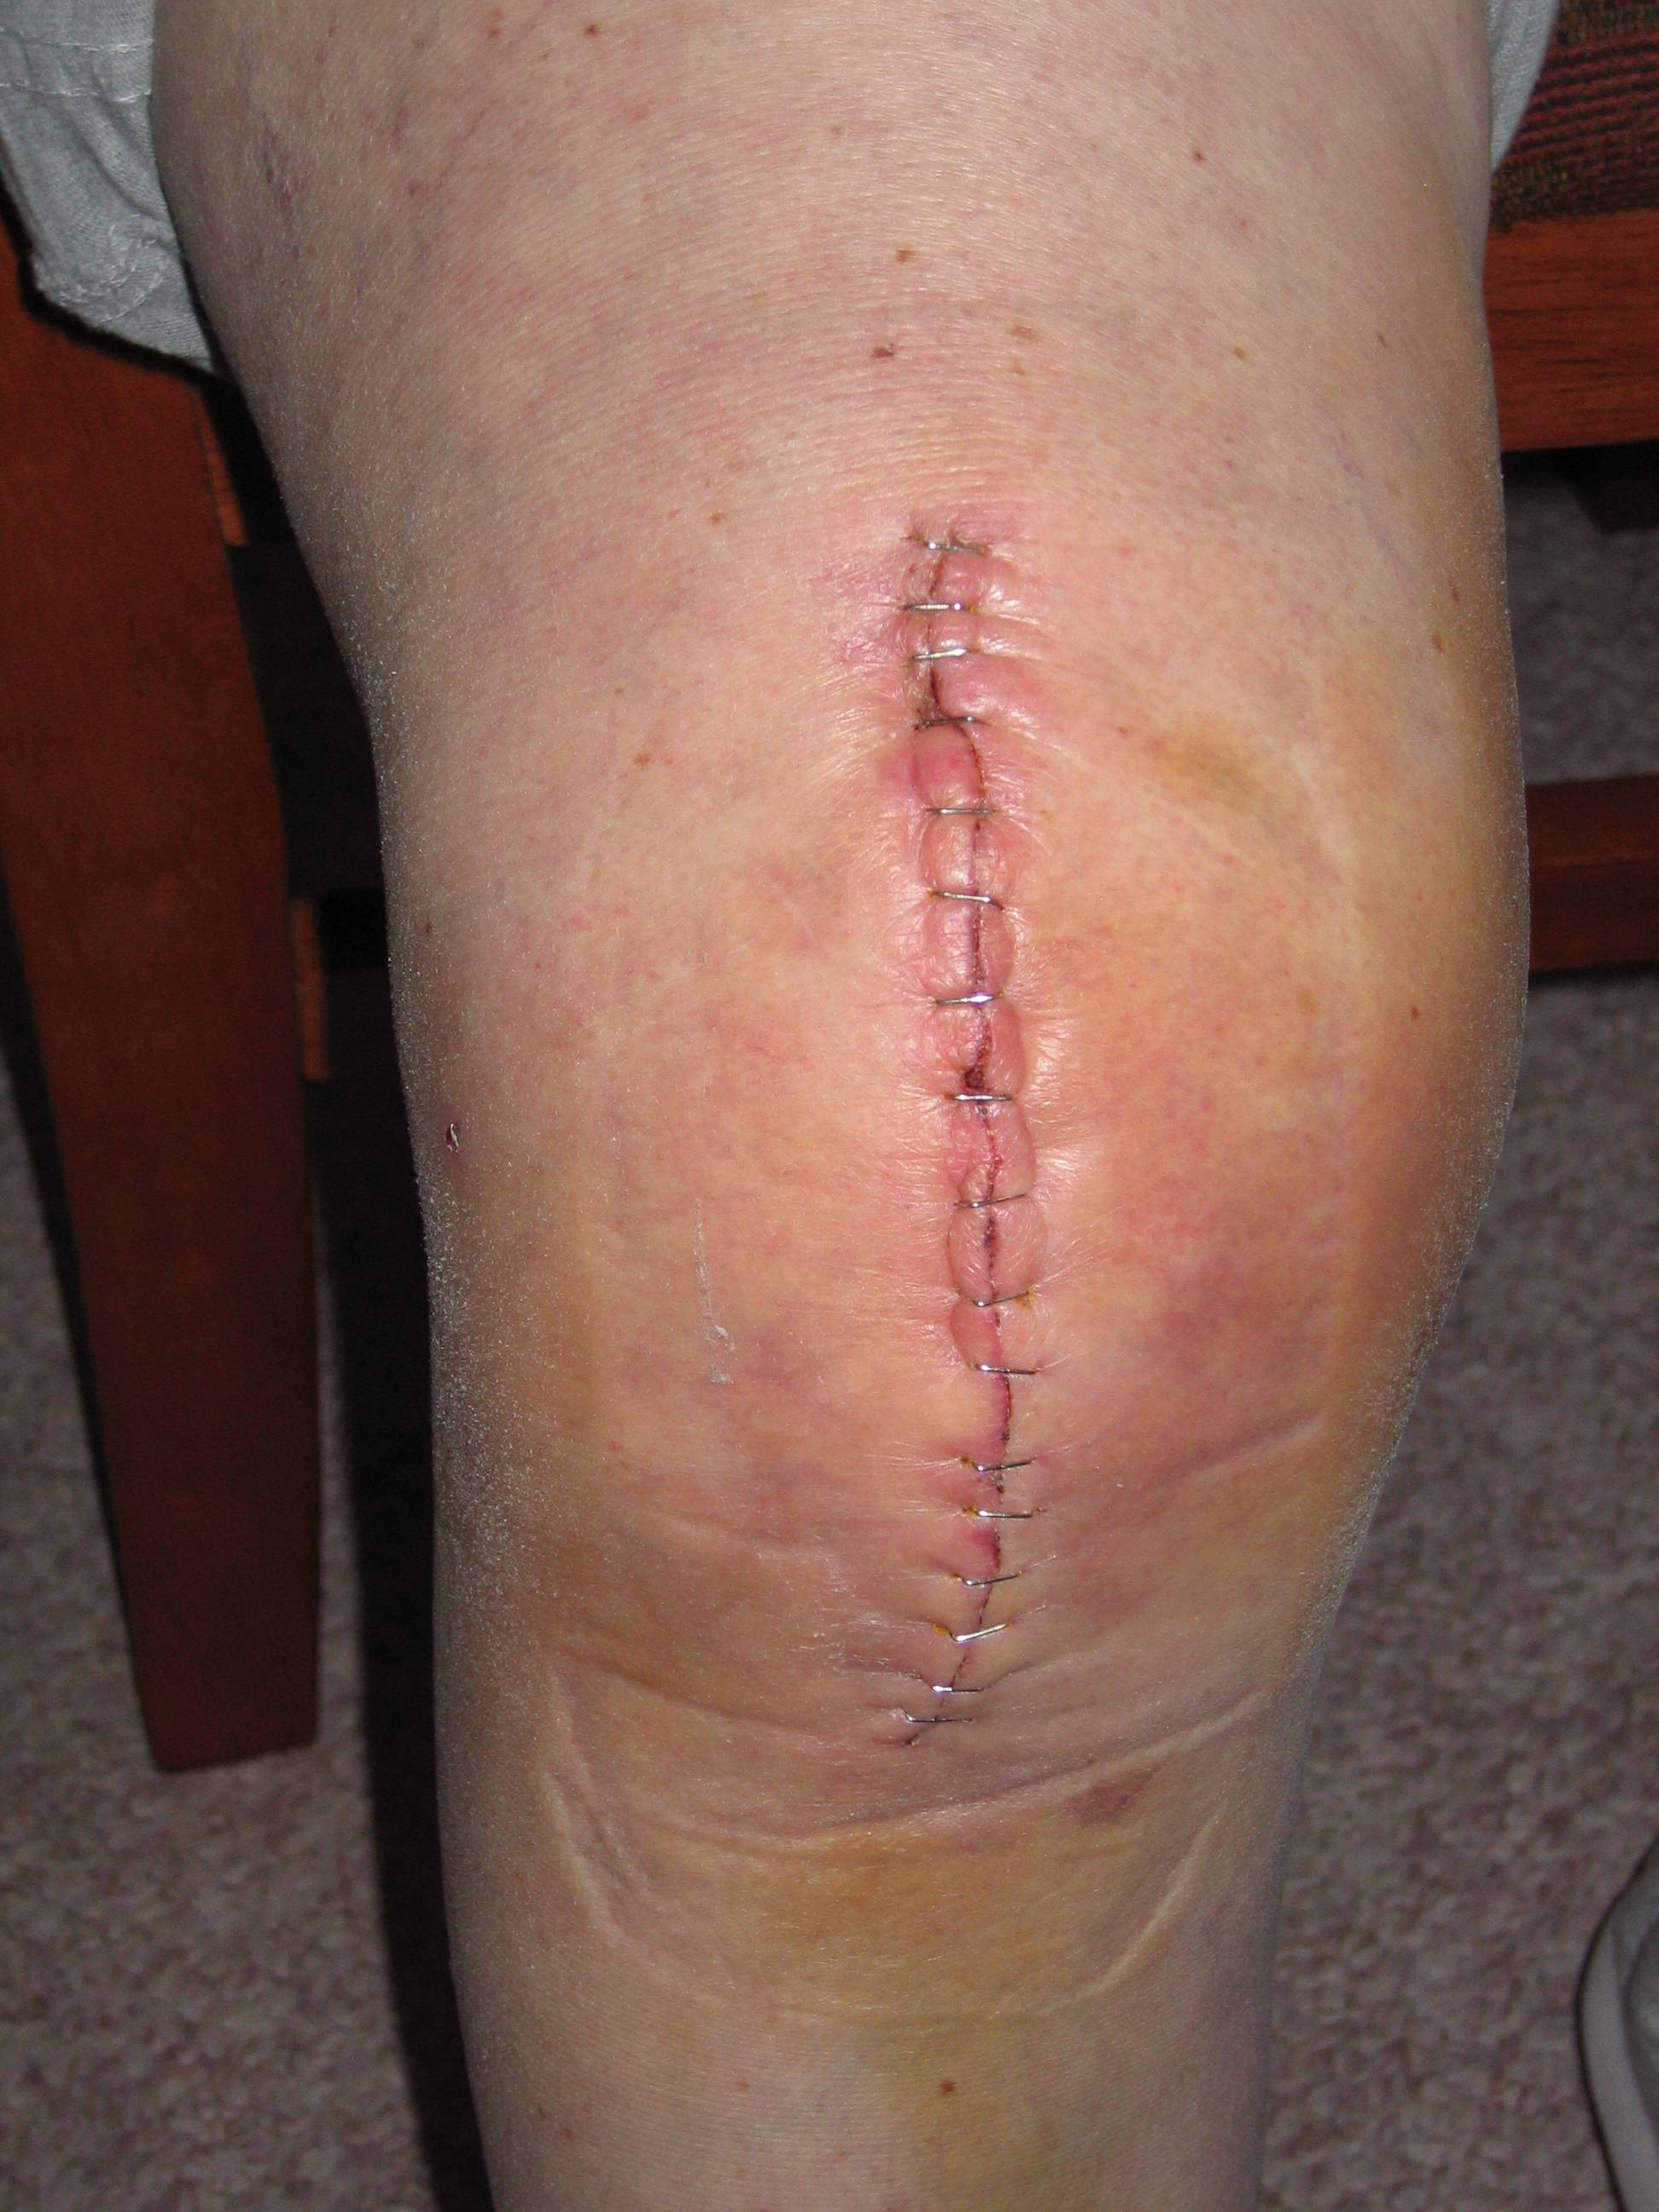 Knee surgical infection